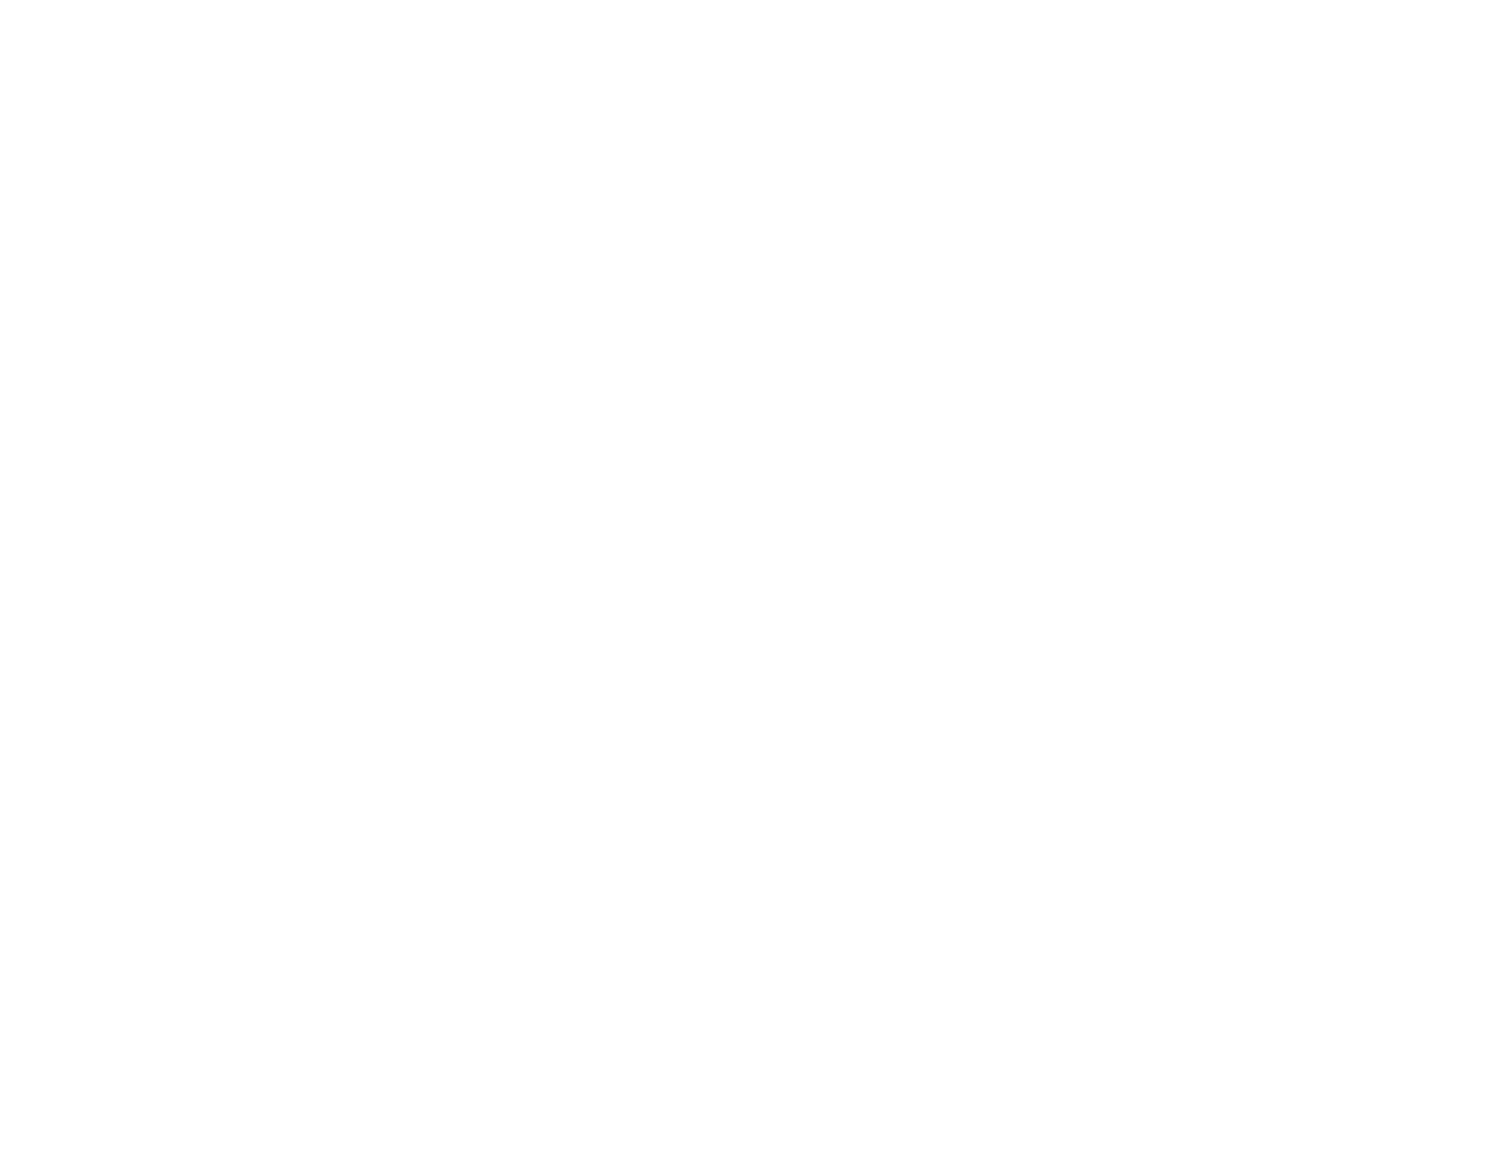 Tri-County Restaurant Association